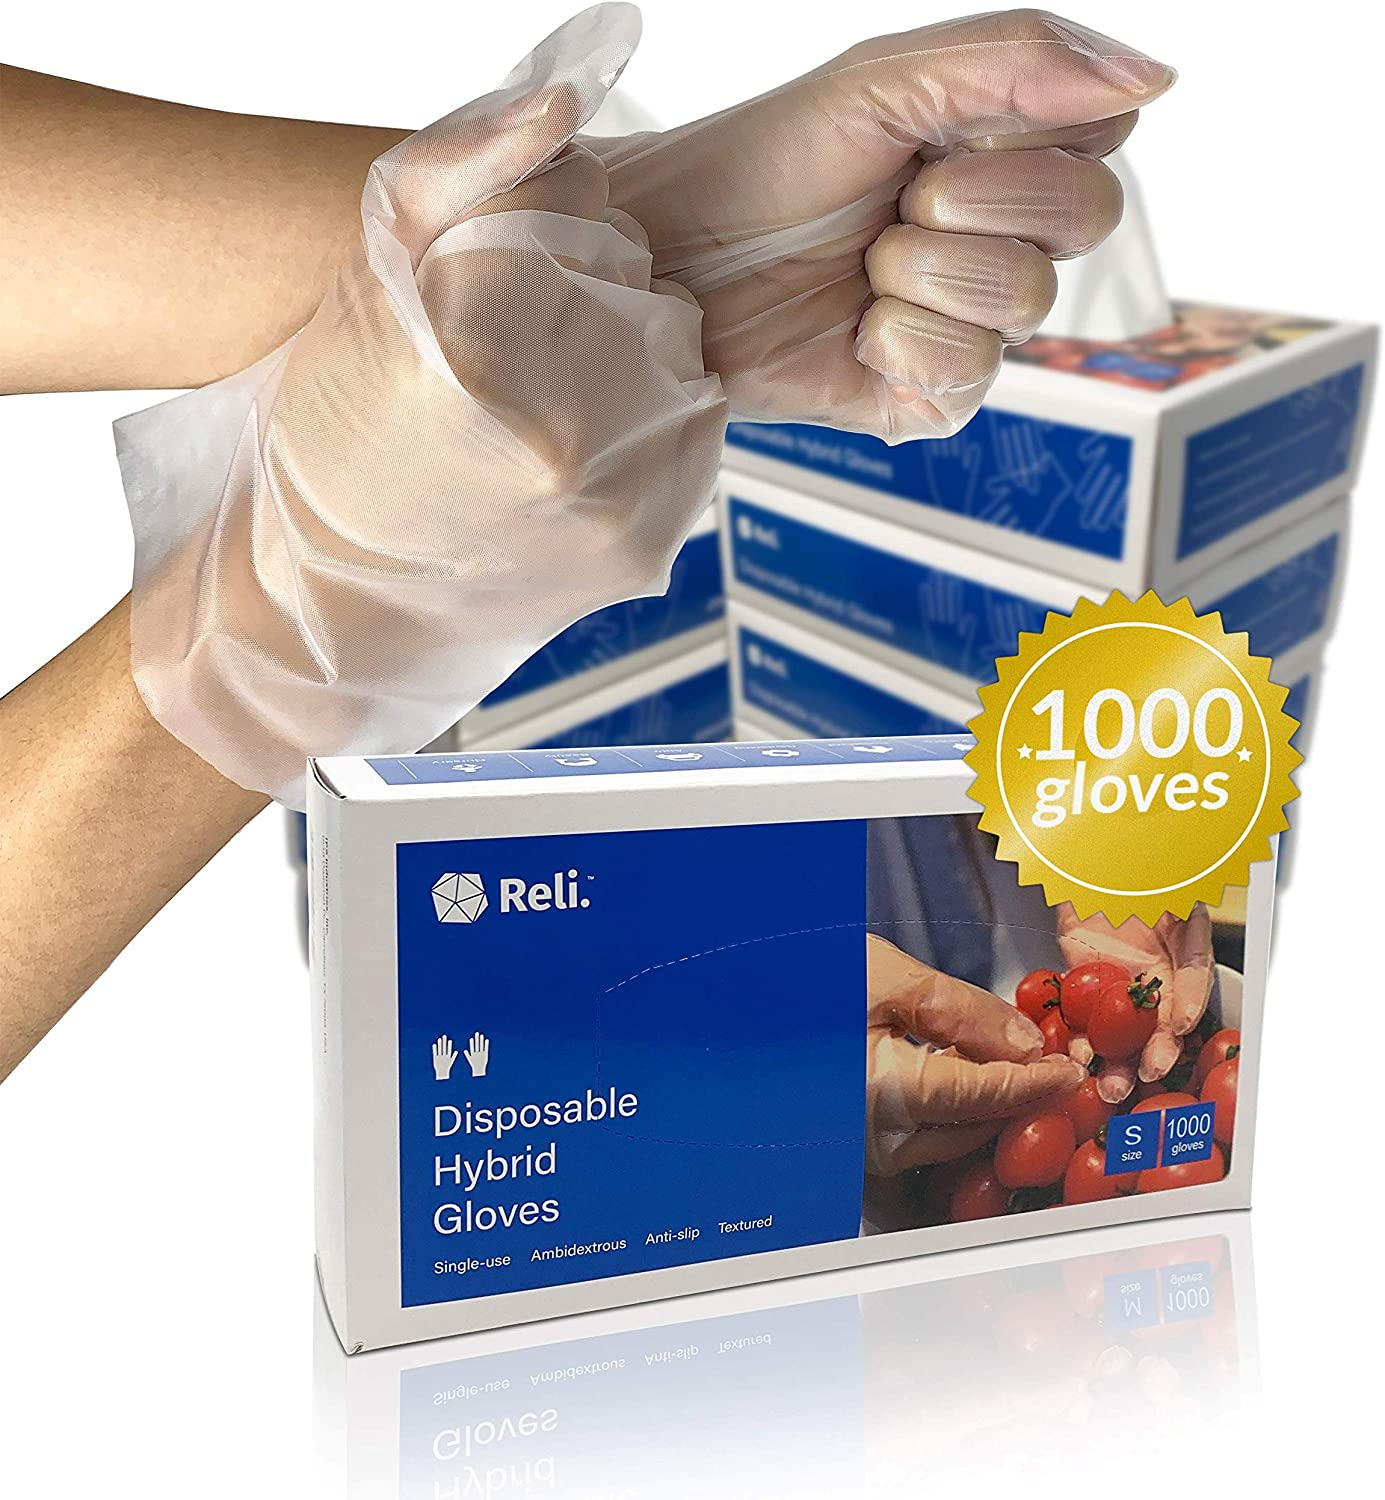 Reli. Disposable Gloves, Small | 1000 Pack, Bulk | S/M/L/XL Available | Hybrid Plastic Gloves | Latex Free Disposable Gloves/Powder Free | Clear Plastic Gloves for Food Service Hand Protection (S)